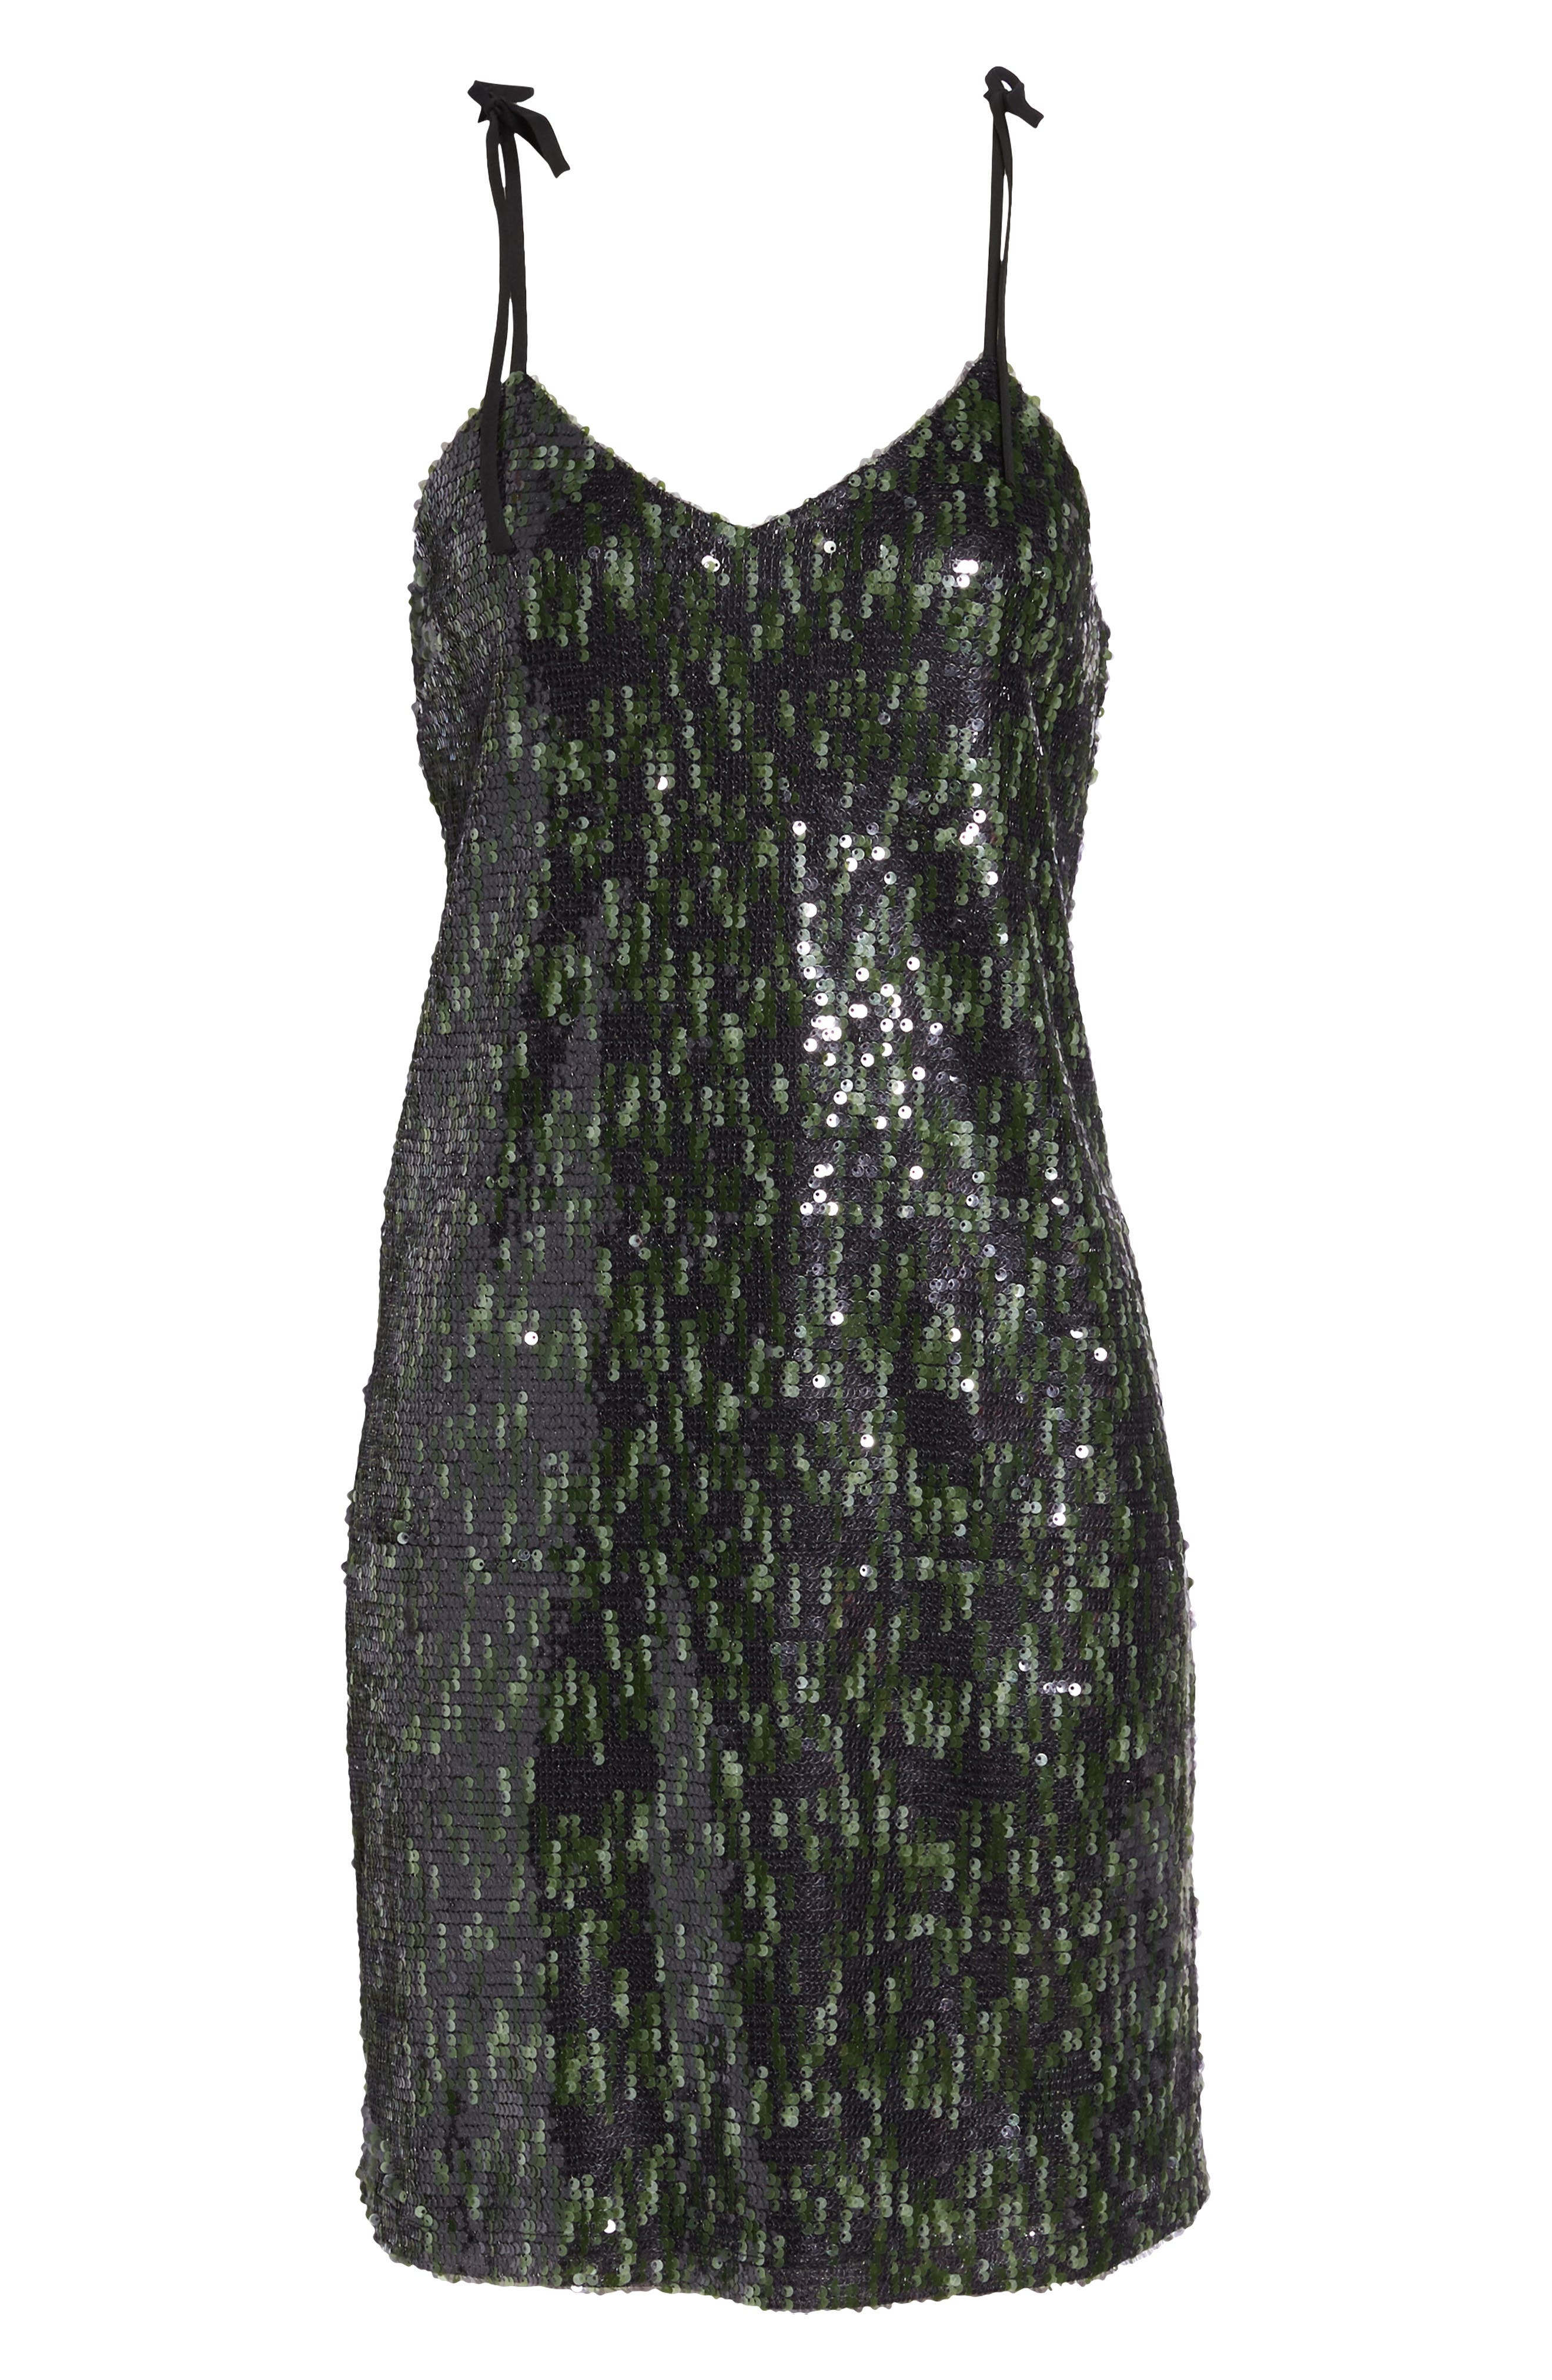 Camo Sequin Dress,                             Alternate thumbnail 6, color,                             Black/ Green